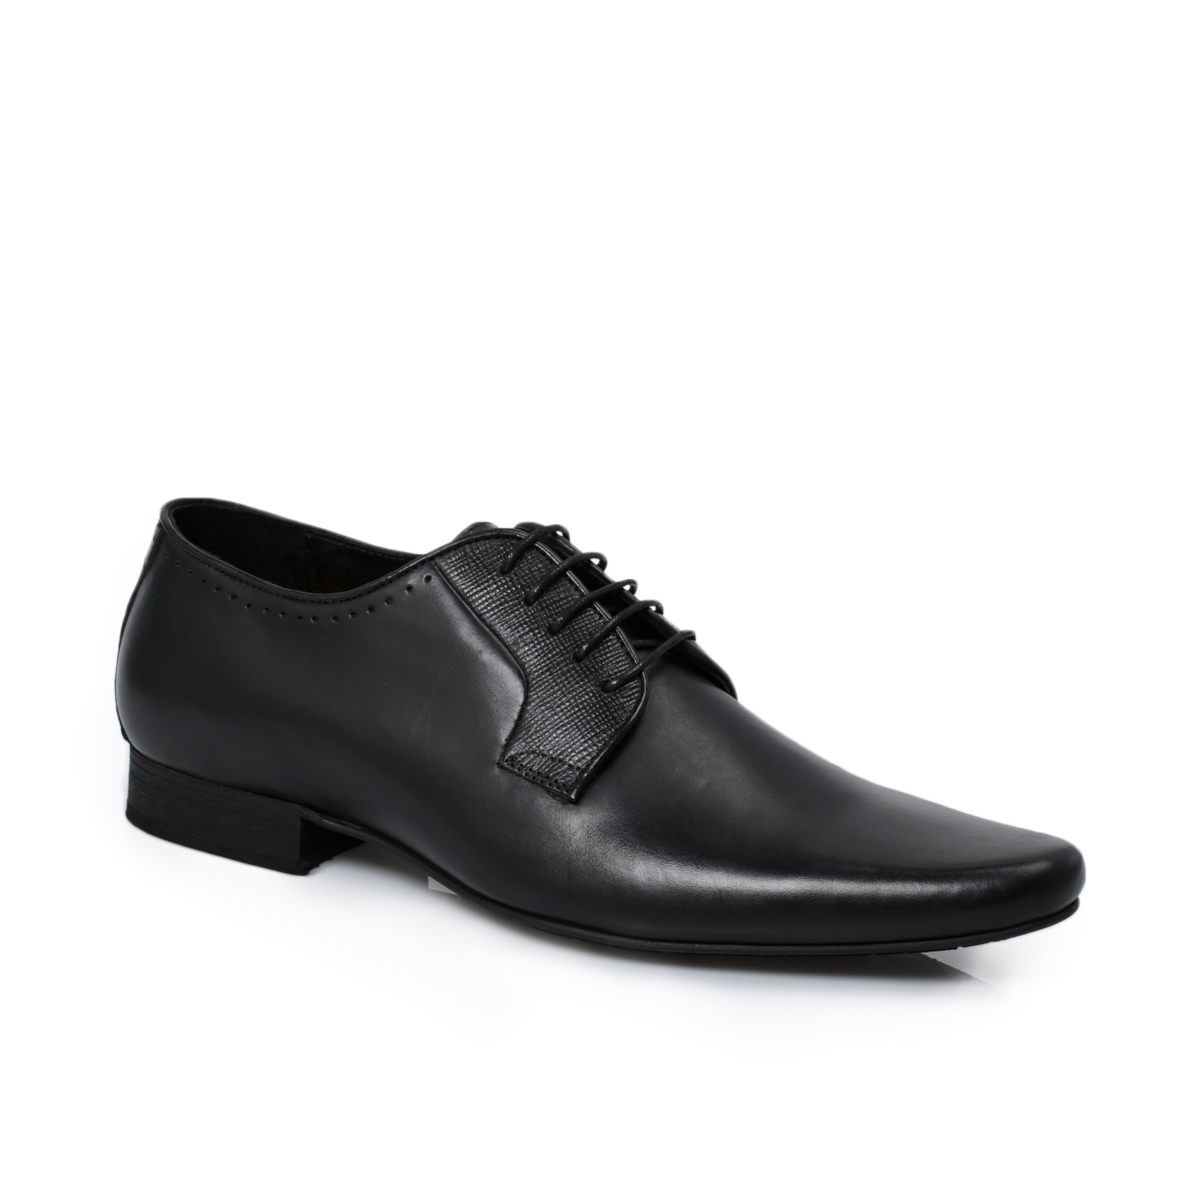 Shop boohoo's range of smart, formal & dress shoes for men available in tons of different styles, incl. brogues & loafers in brown, black, navy or gray!